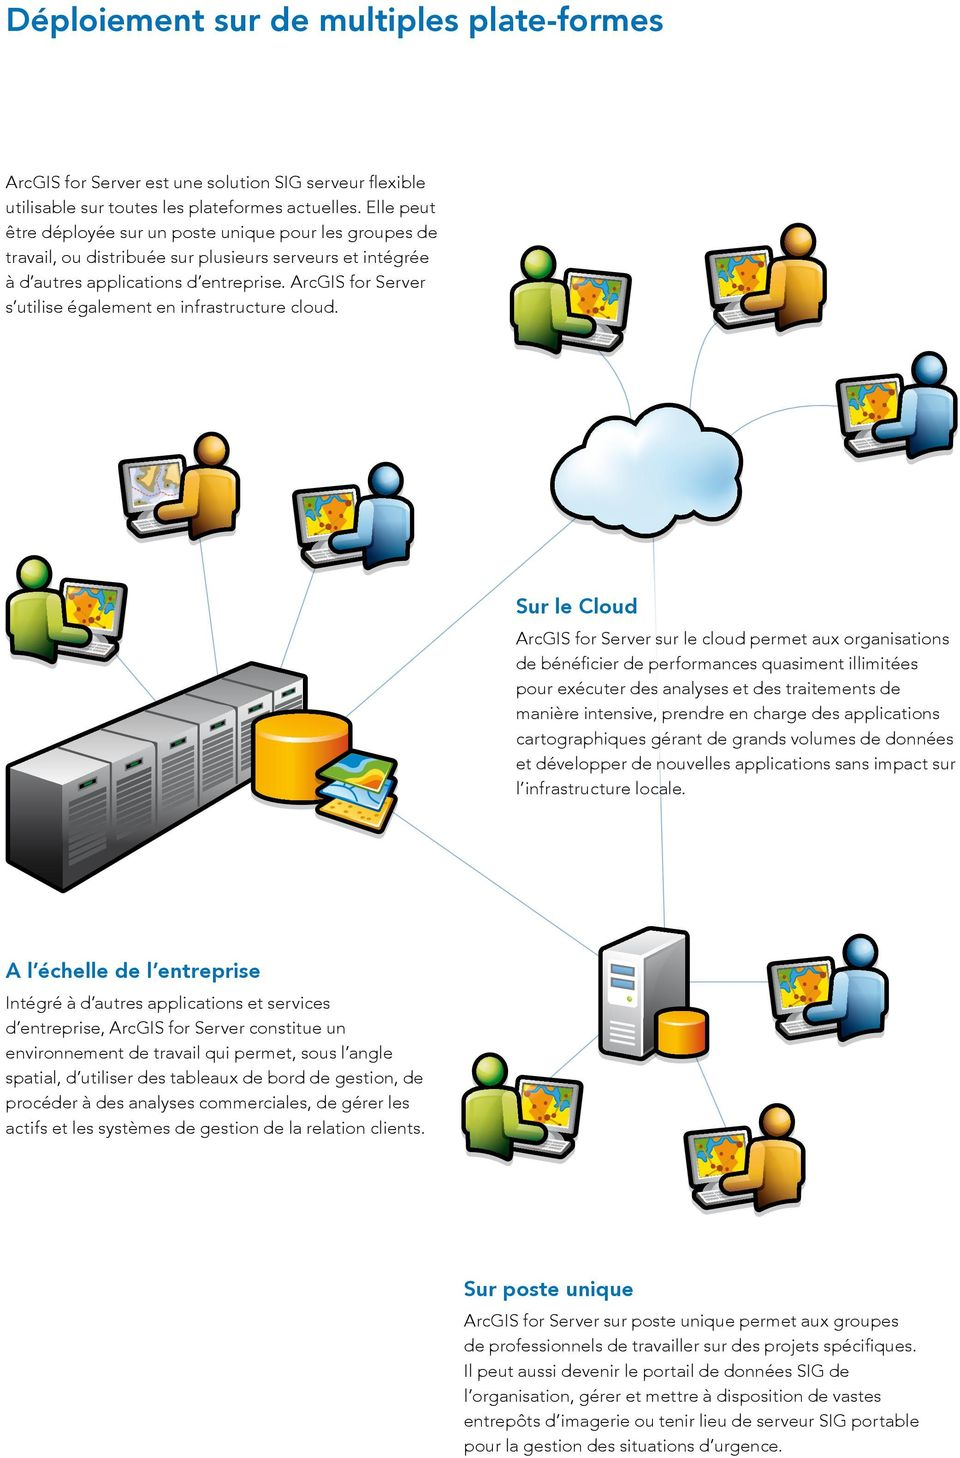 ArcGIS for Server s utilise également en infrastructure cloud.